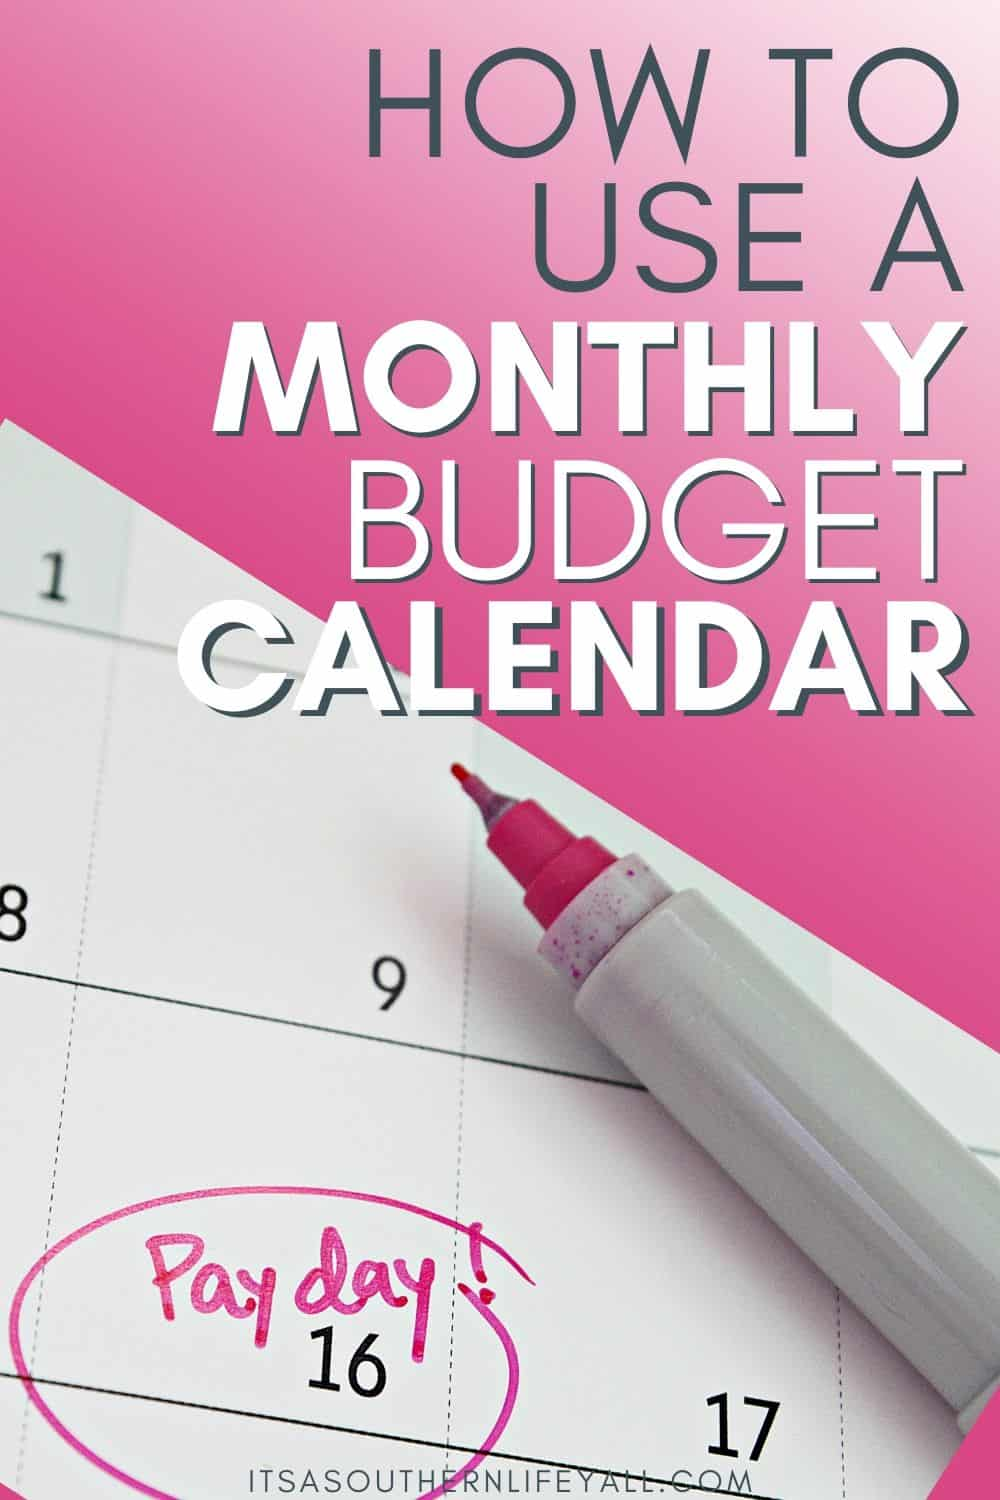 How to Use a Monthly Budget Calendar